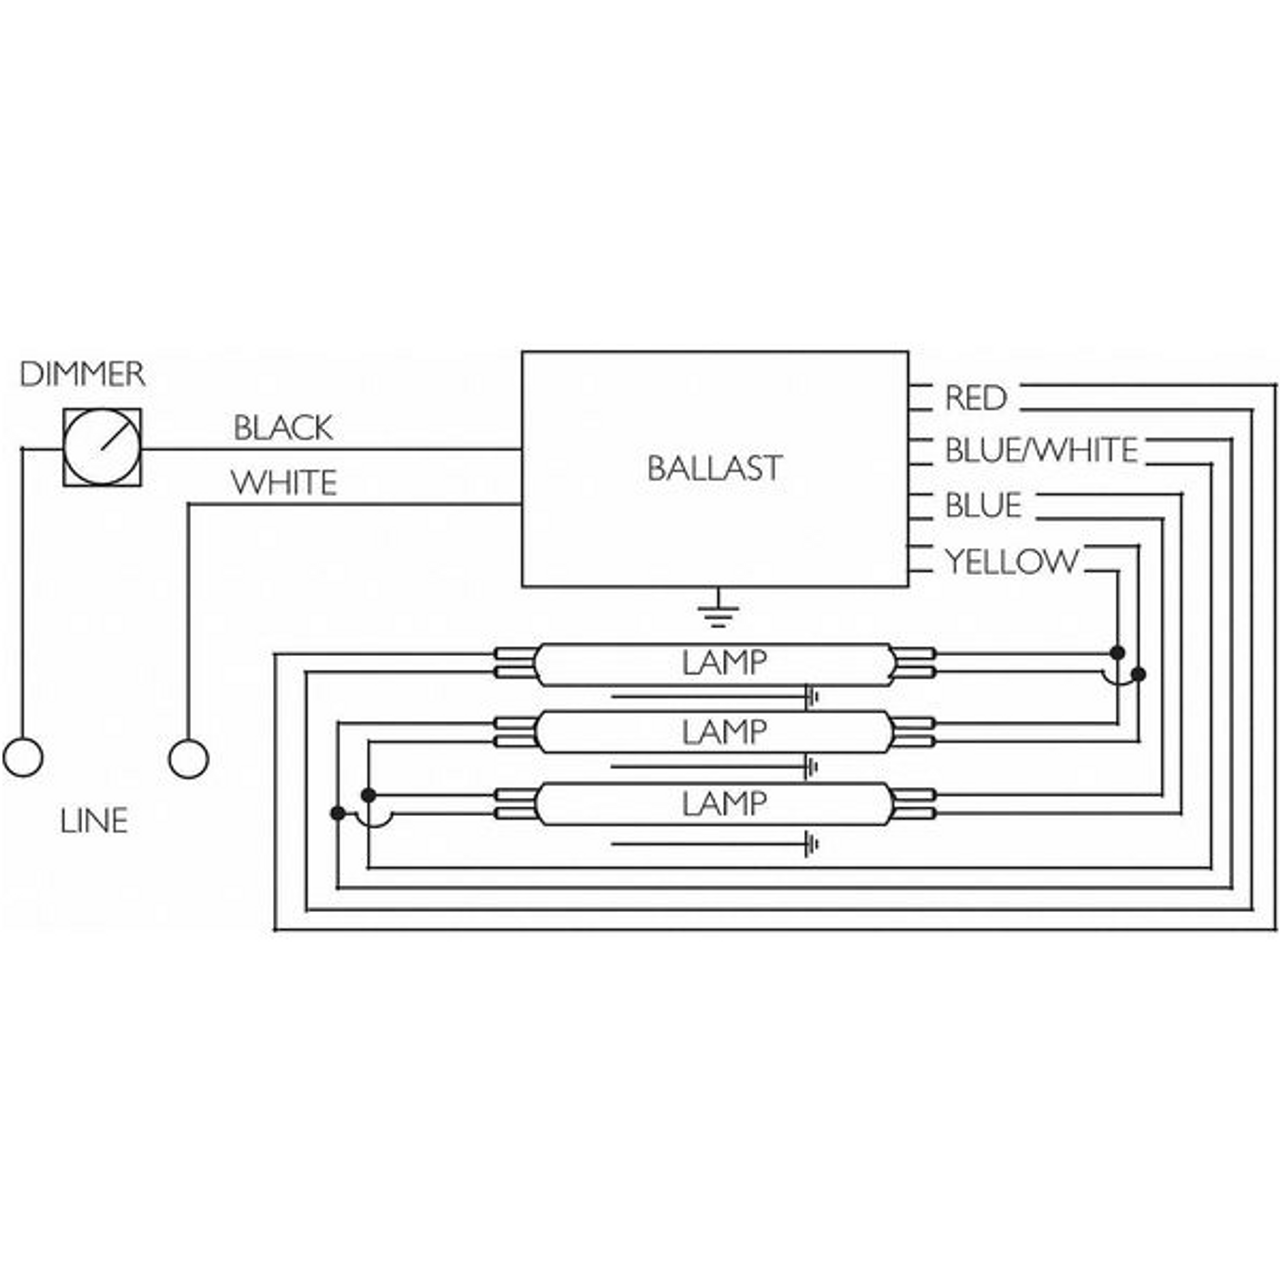 Advance Mark 7 Dimming Ballast Wiring Diagram | Bege Wiring DiagramBege Wiring Diagram